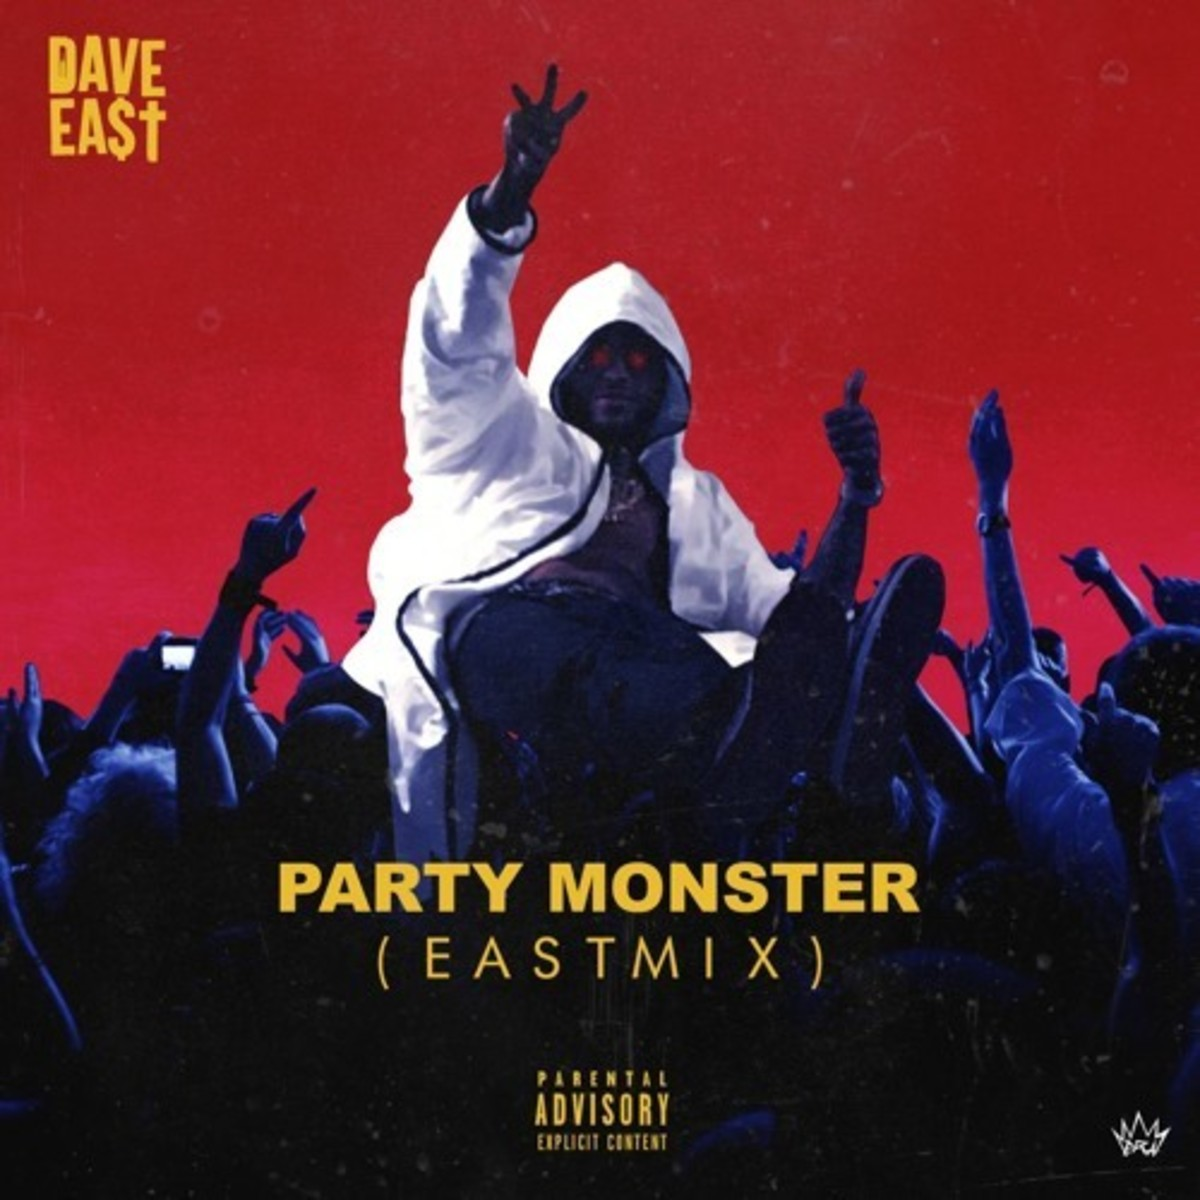 dave-east-party-monster-eastmix.jpg